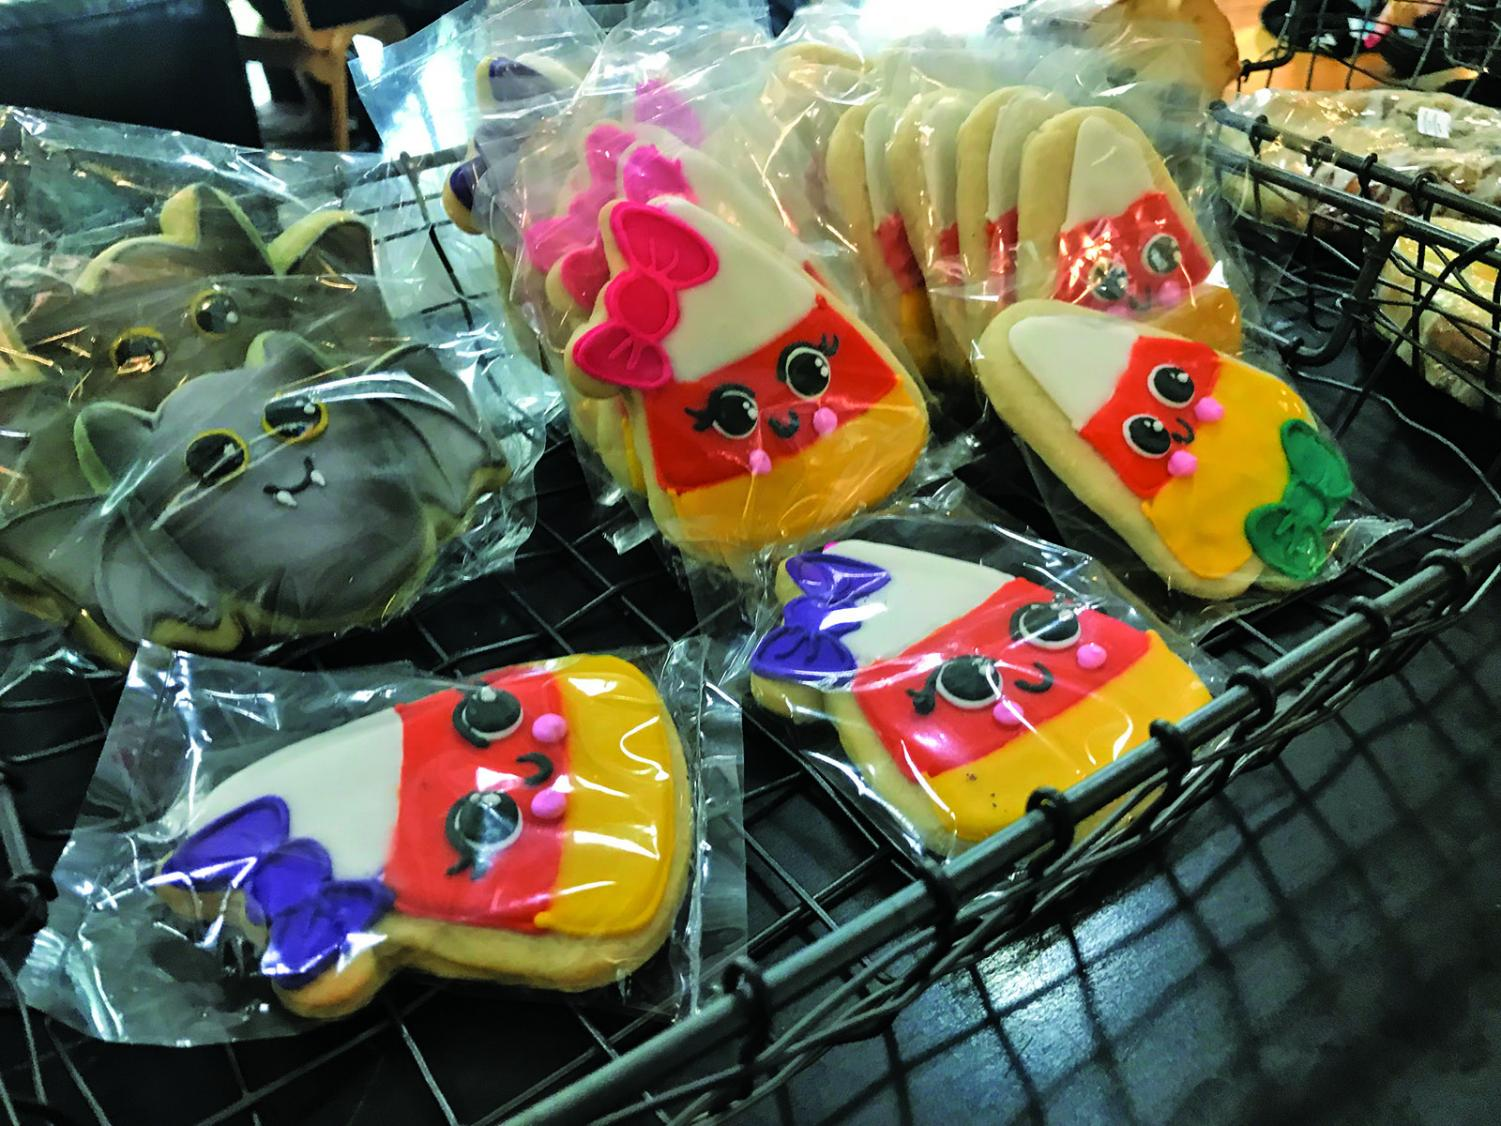 People can't seem to come to a consensus about the Halloween treat